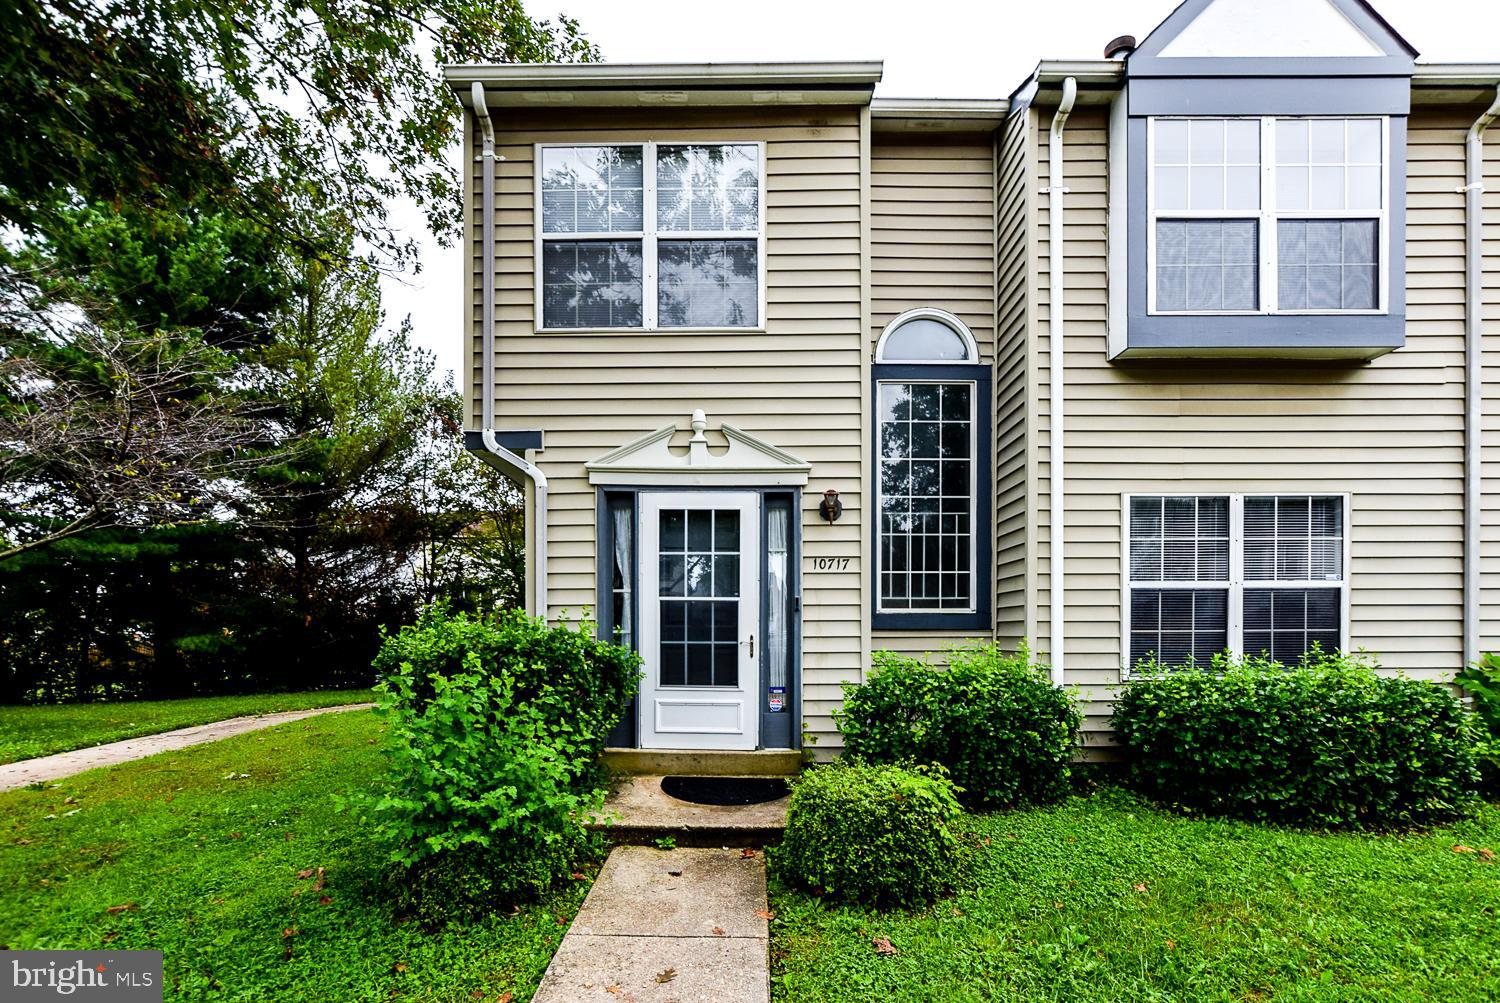 Welcome to 10717 Joyceton dr Upper Marlboro Md - LOCATION & CONVENIENCE! This 3 bedroom, 2.5 bath, e